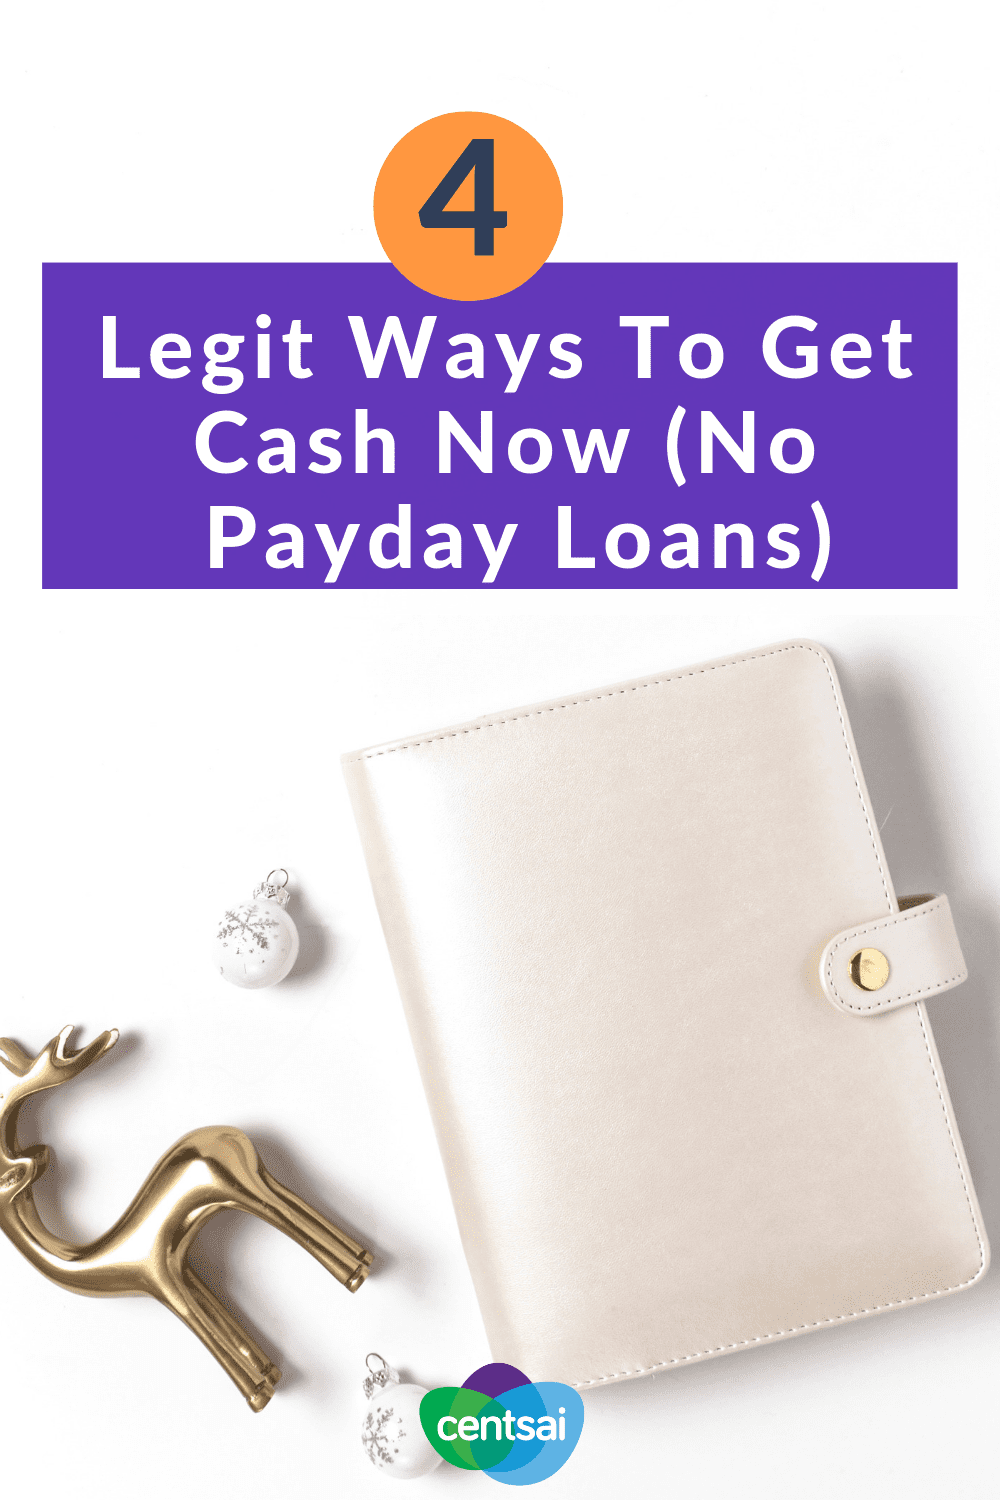 4 Legit Ways To Get Cash Now (No Payday Loans). Facing an emergency you can't afford? A cash payday loan may seem tempting. Try these easy ideas instead — your wallet will thank you. #emergencyfund #paydayloan #certificate #personalfinance